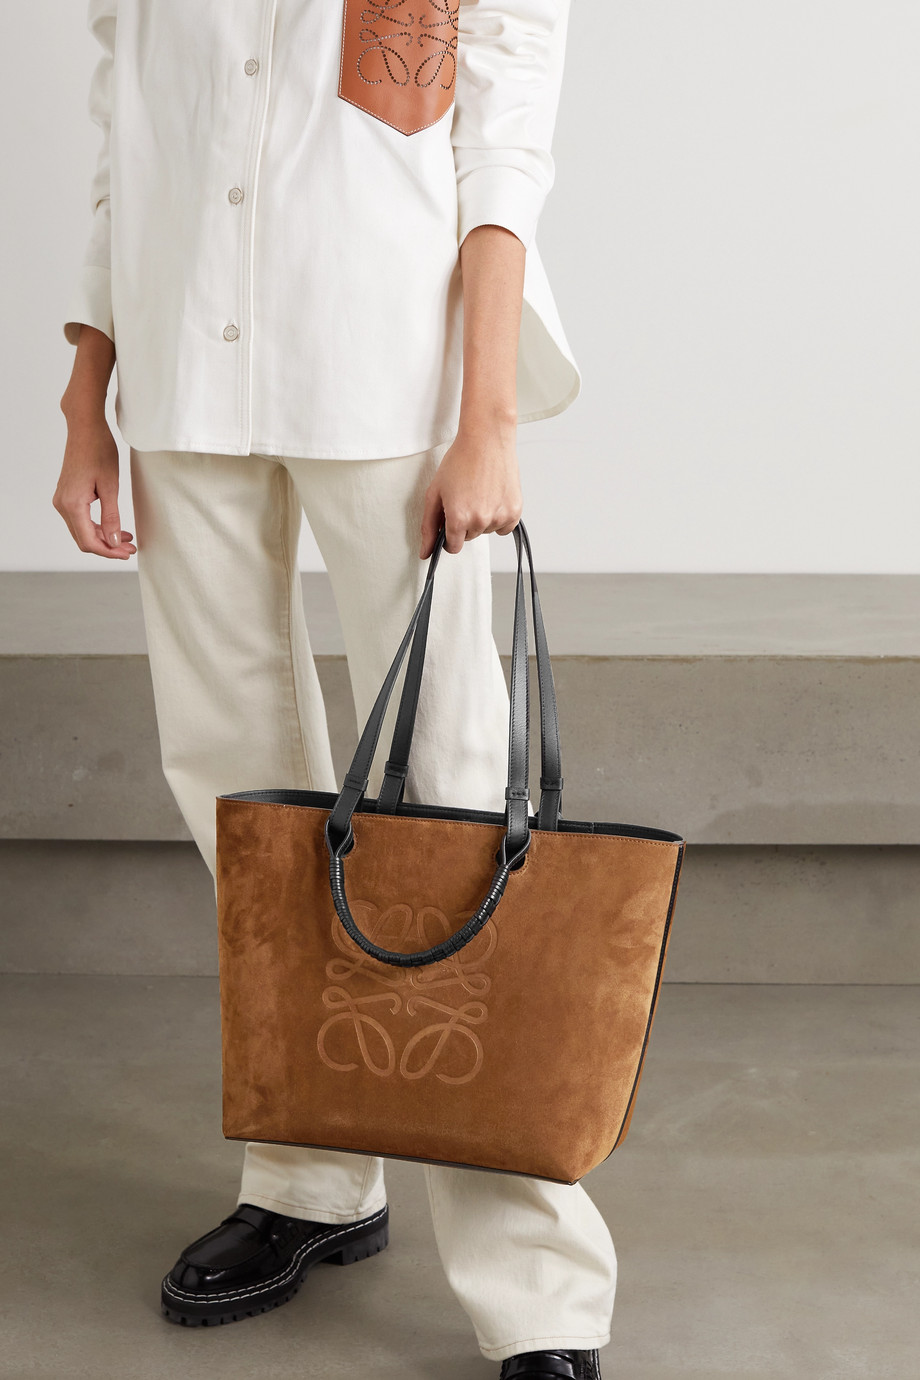 Loewe Anagram medium leather-trimmed debossed suede tote